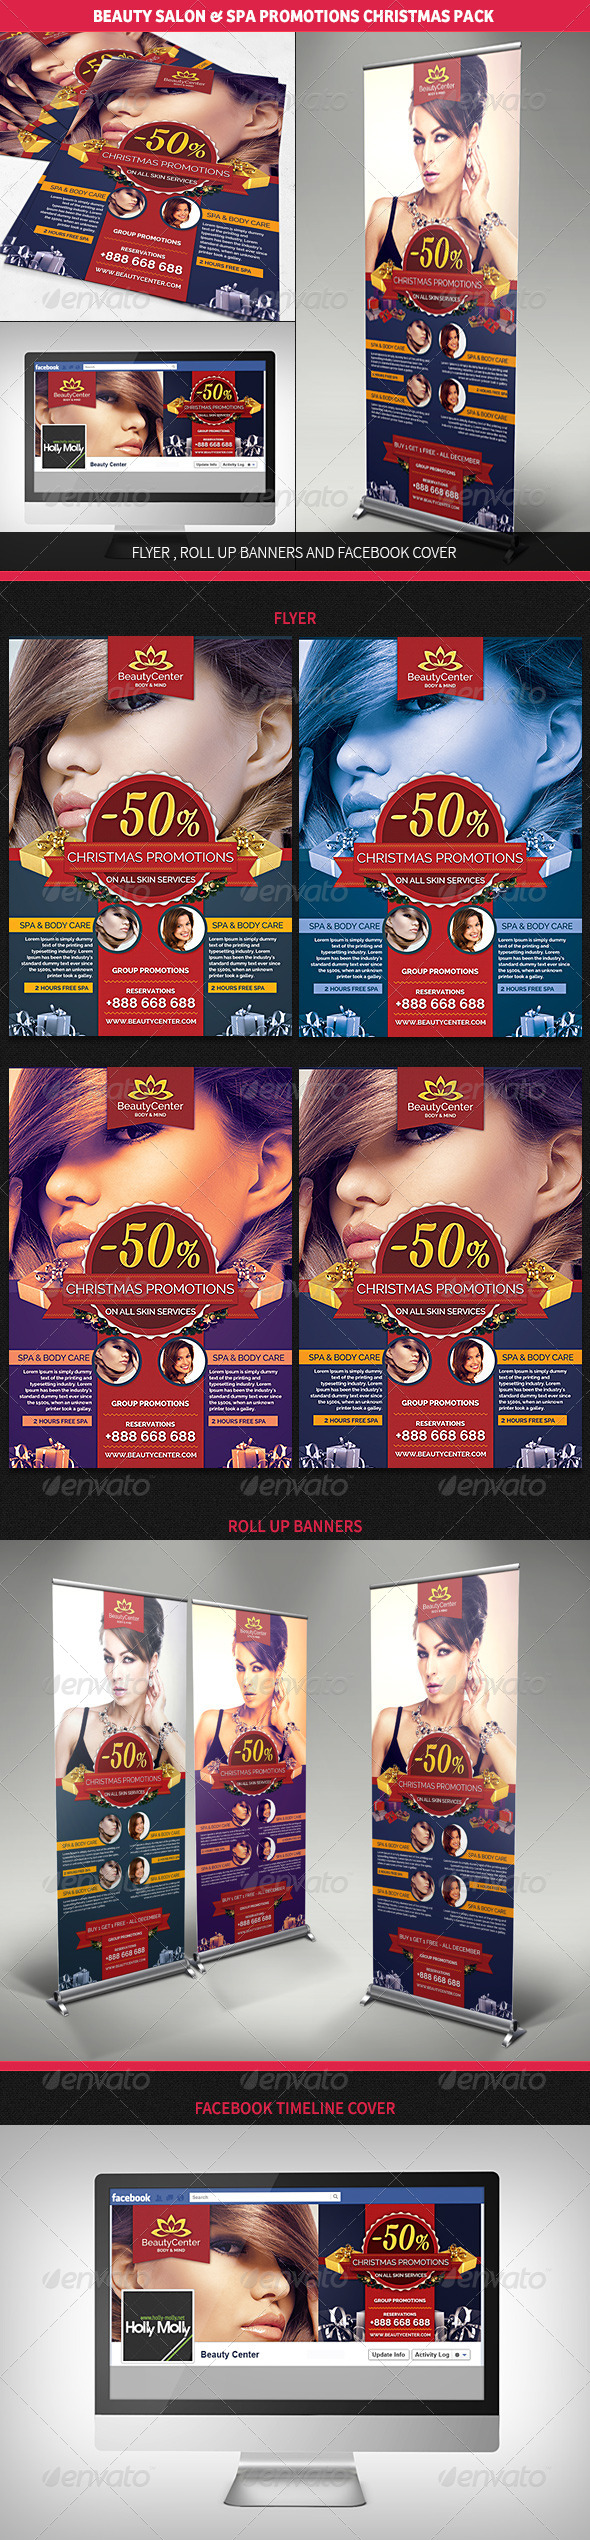 GraphicRiver Beauty Center & Spa Christmas Promotions Pack 6195034